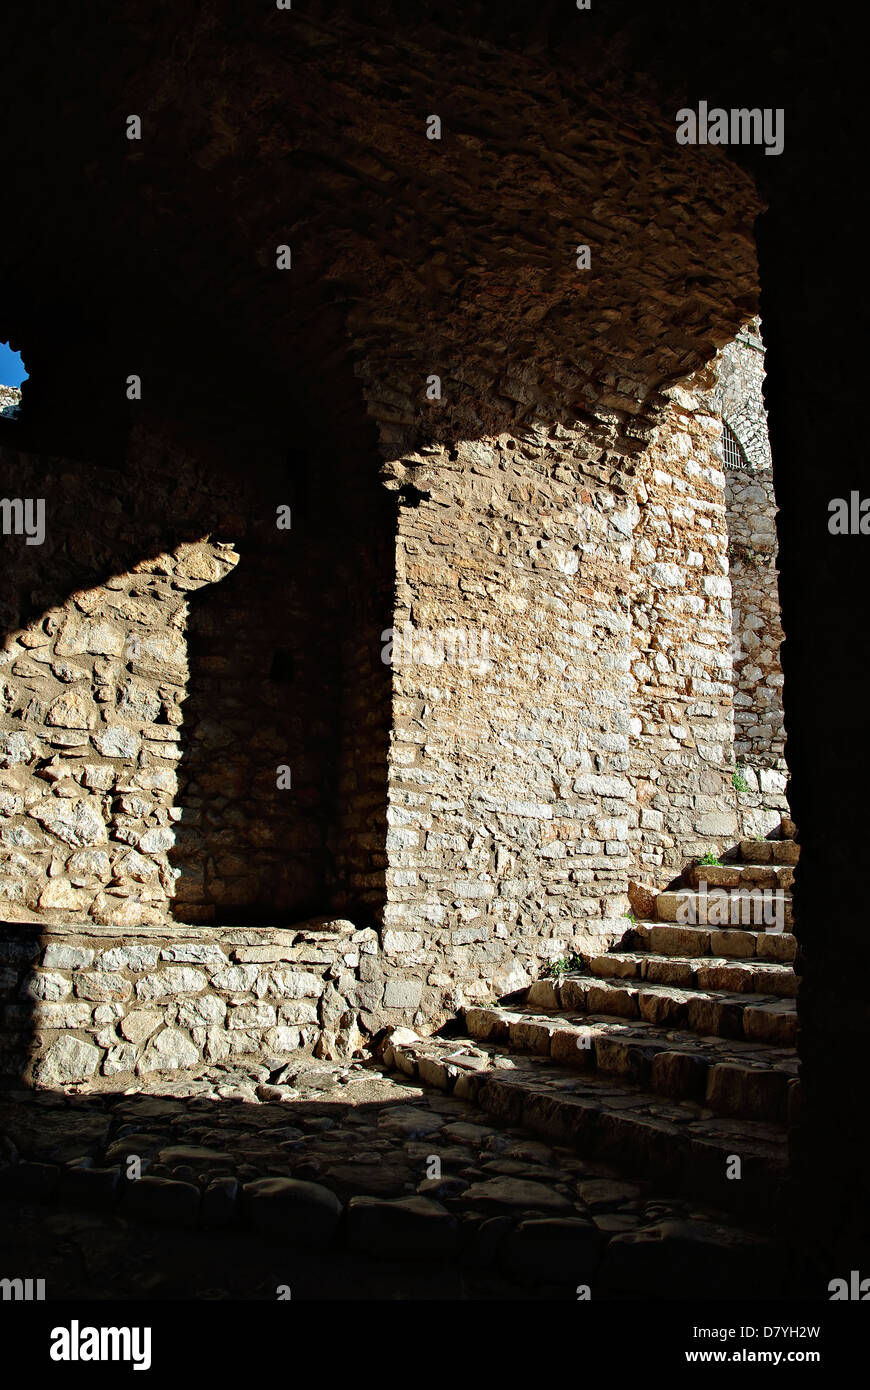 Shadow detail of medieval fortress stone walls and entrance. - Stock Image & Indoor Stone Walls Stock Photos \u0026 Indoor Stone Walls Stock Images ...